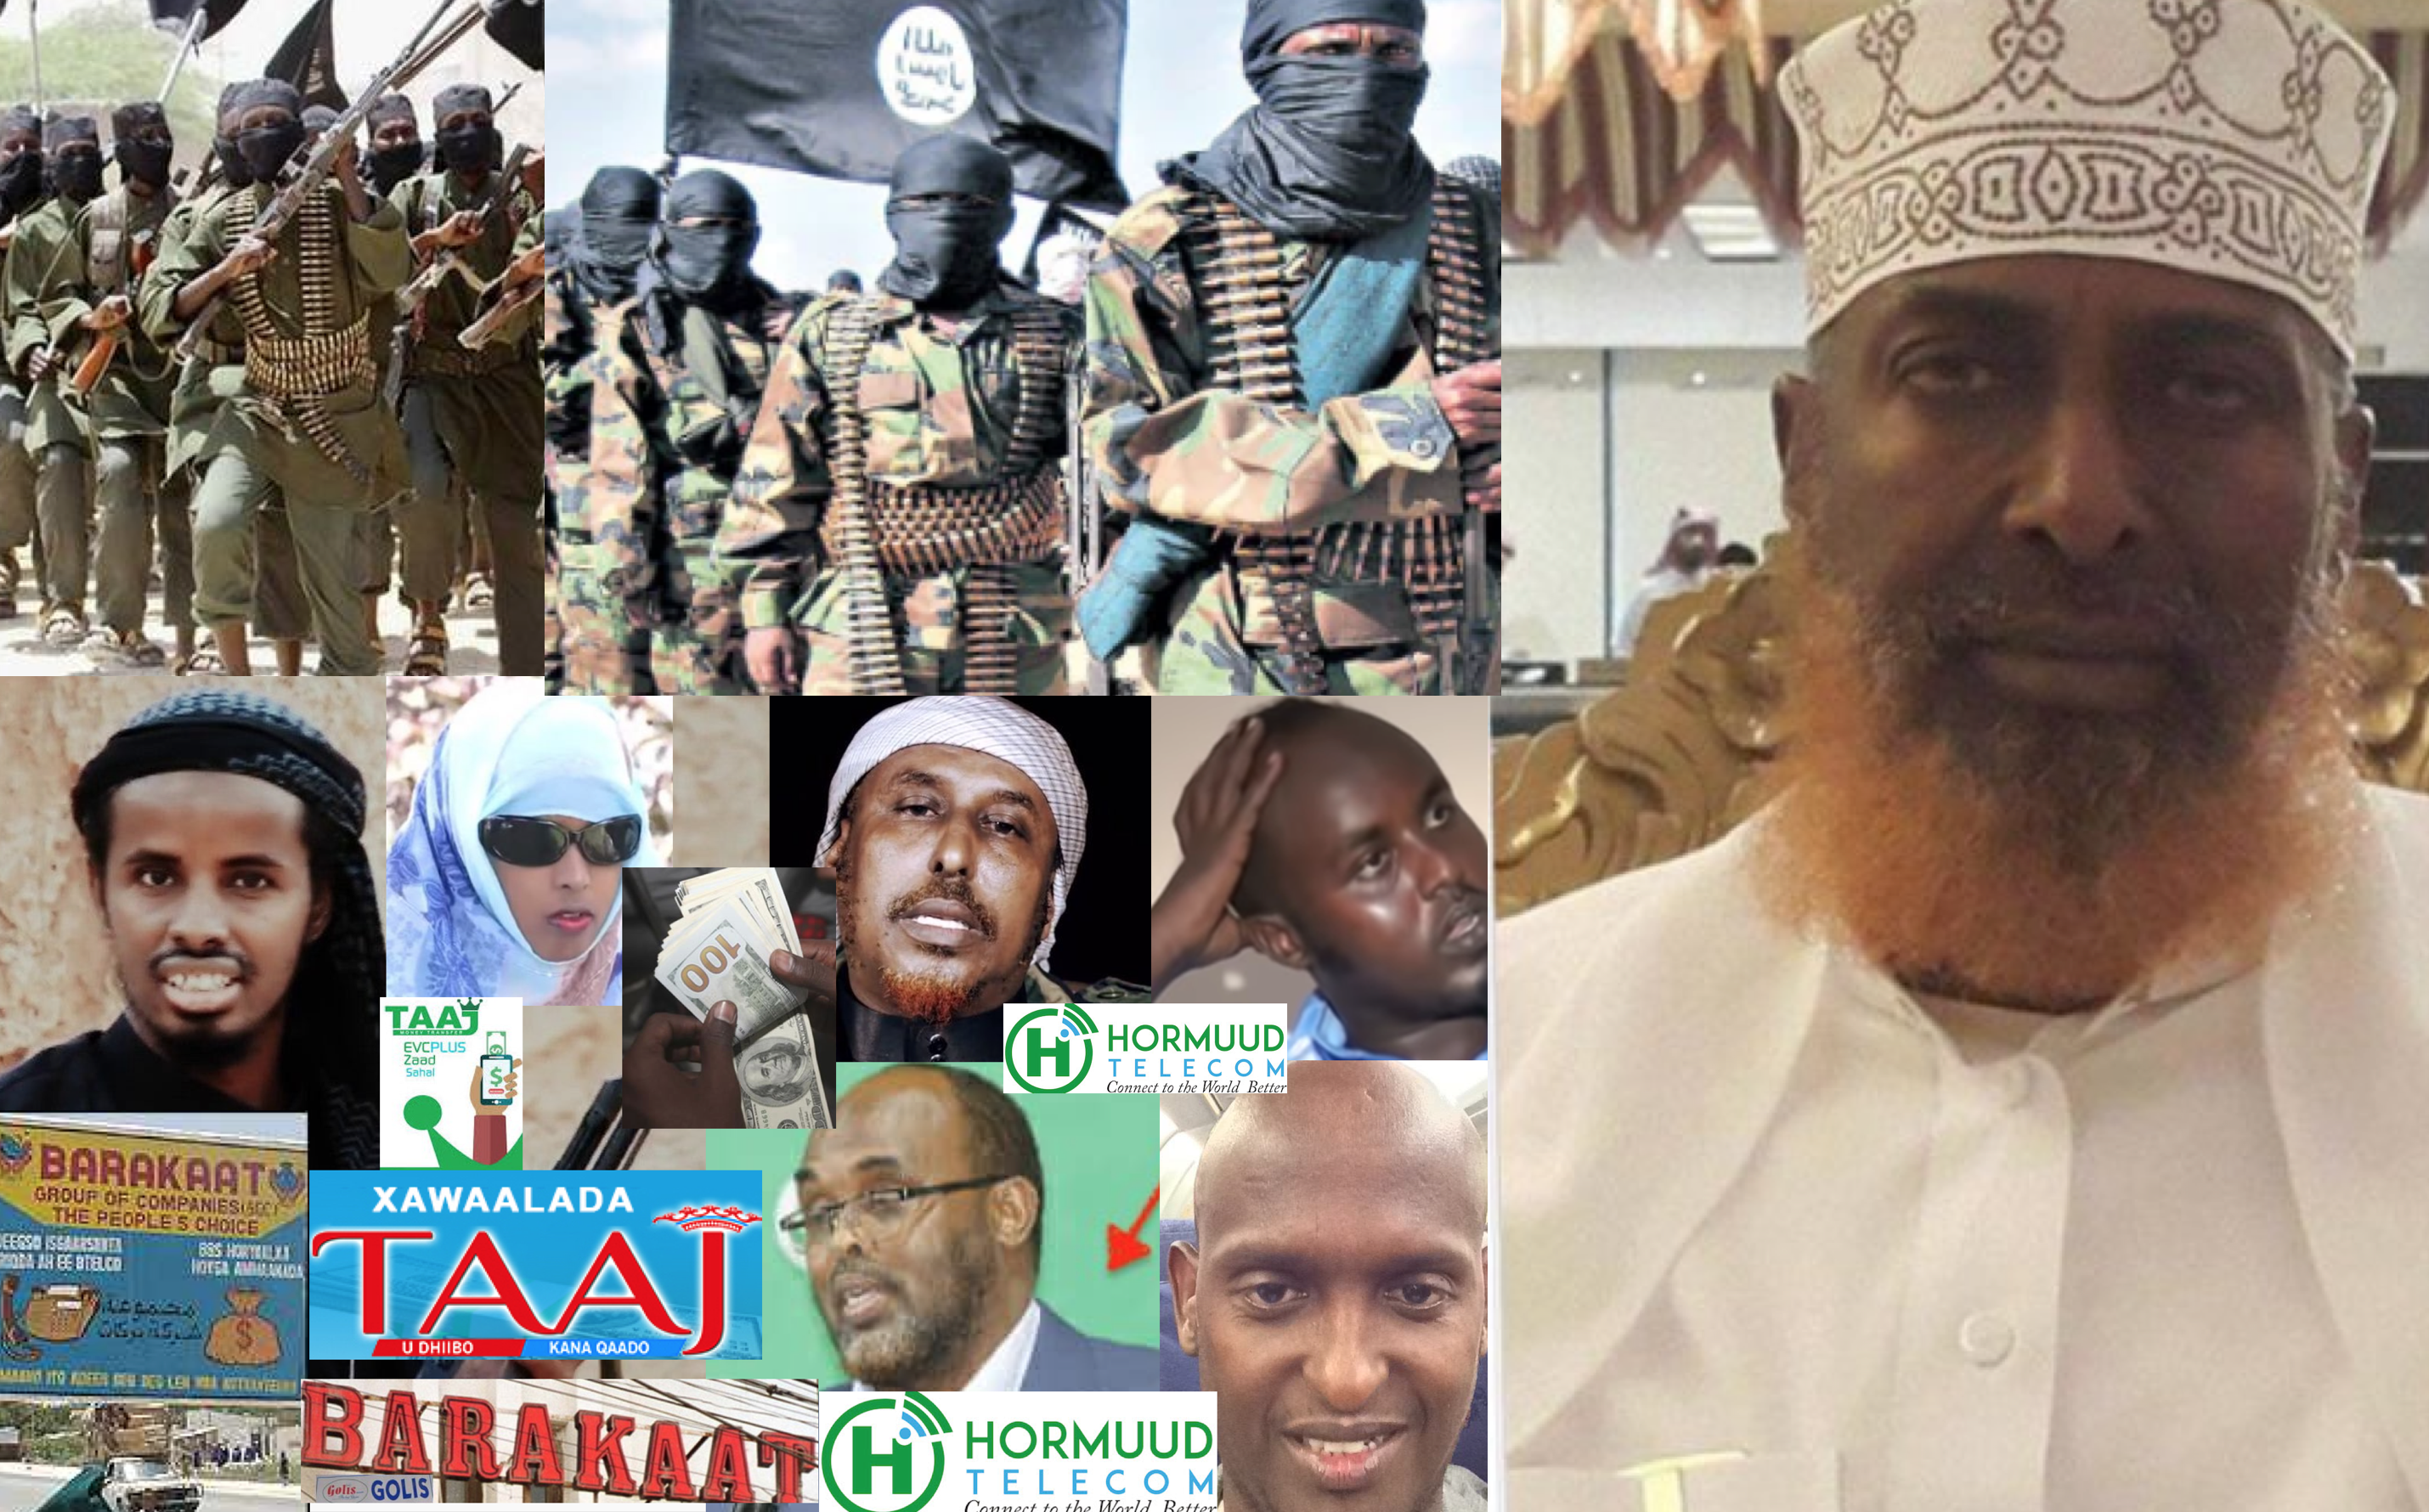 Hormuud Telecom is the greatest financier of Al-Shabaab